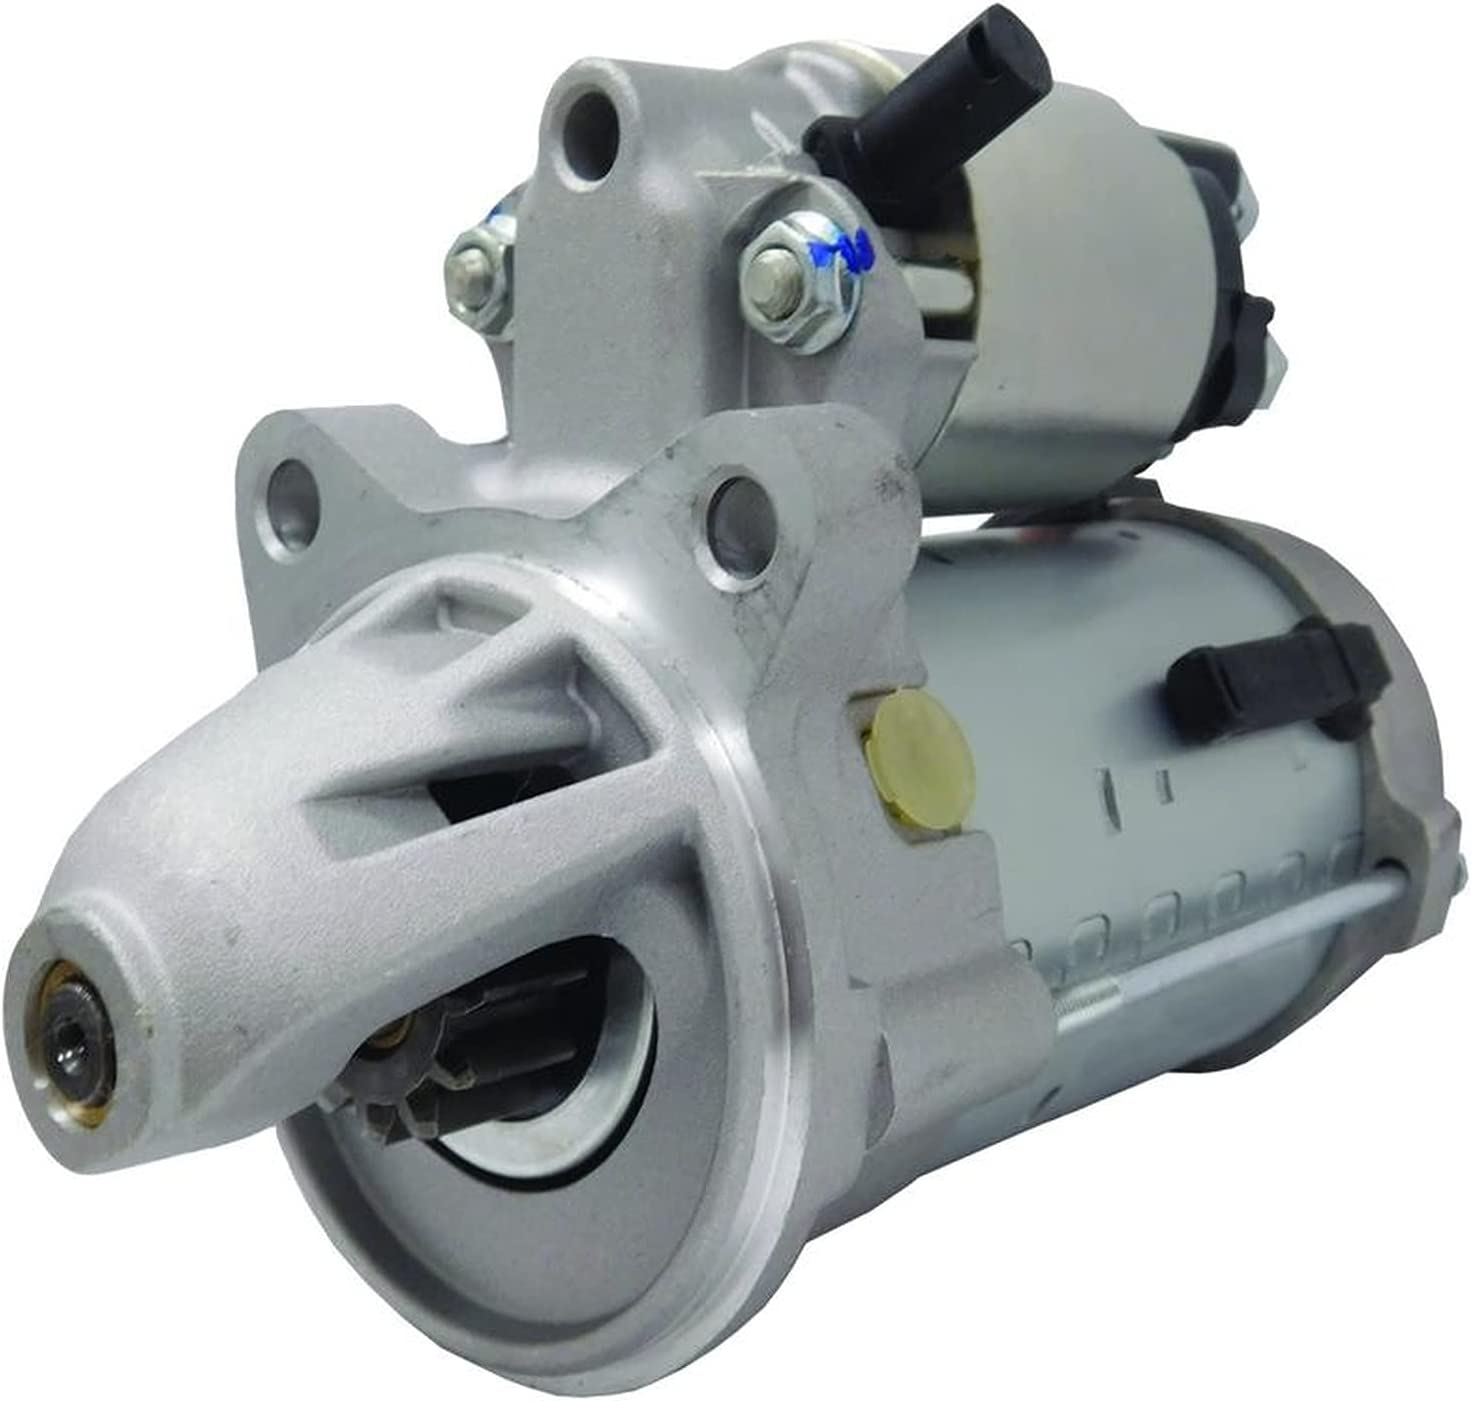 Cheap mail order sales New Starter For Ford sold out Truck F450 F550 F59 13-1 E450 6.8L F53 5.4L